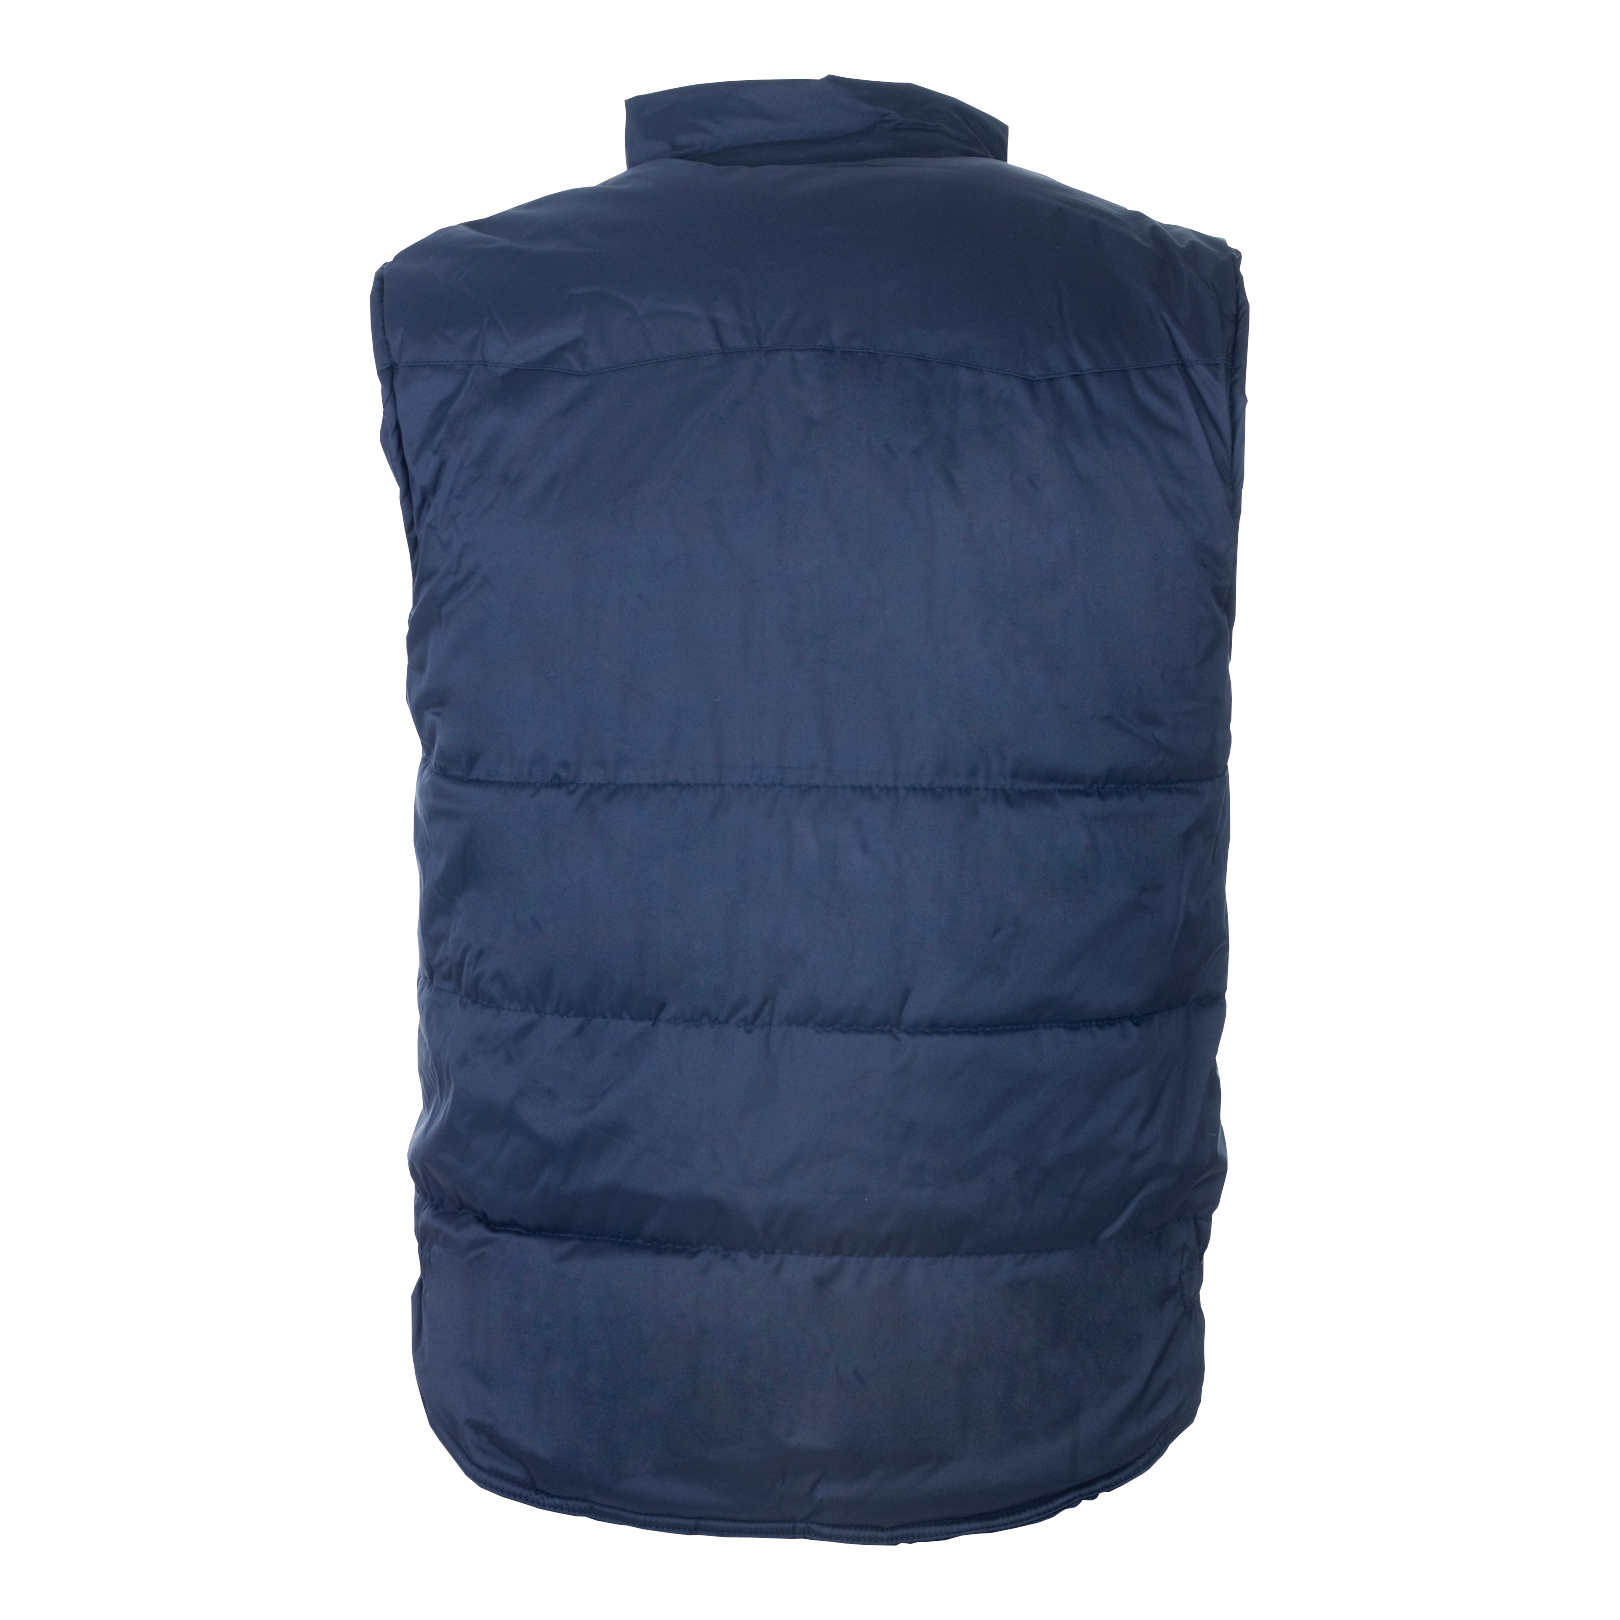 Body Warmer Polyester with Padding & Multi Pockets Small Navy Ref HBNS *Approx 3 Day Leadtime*